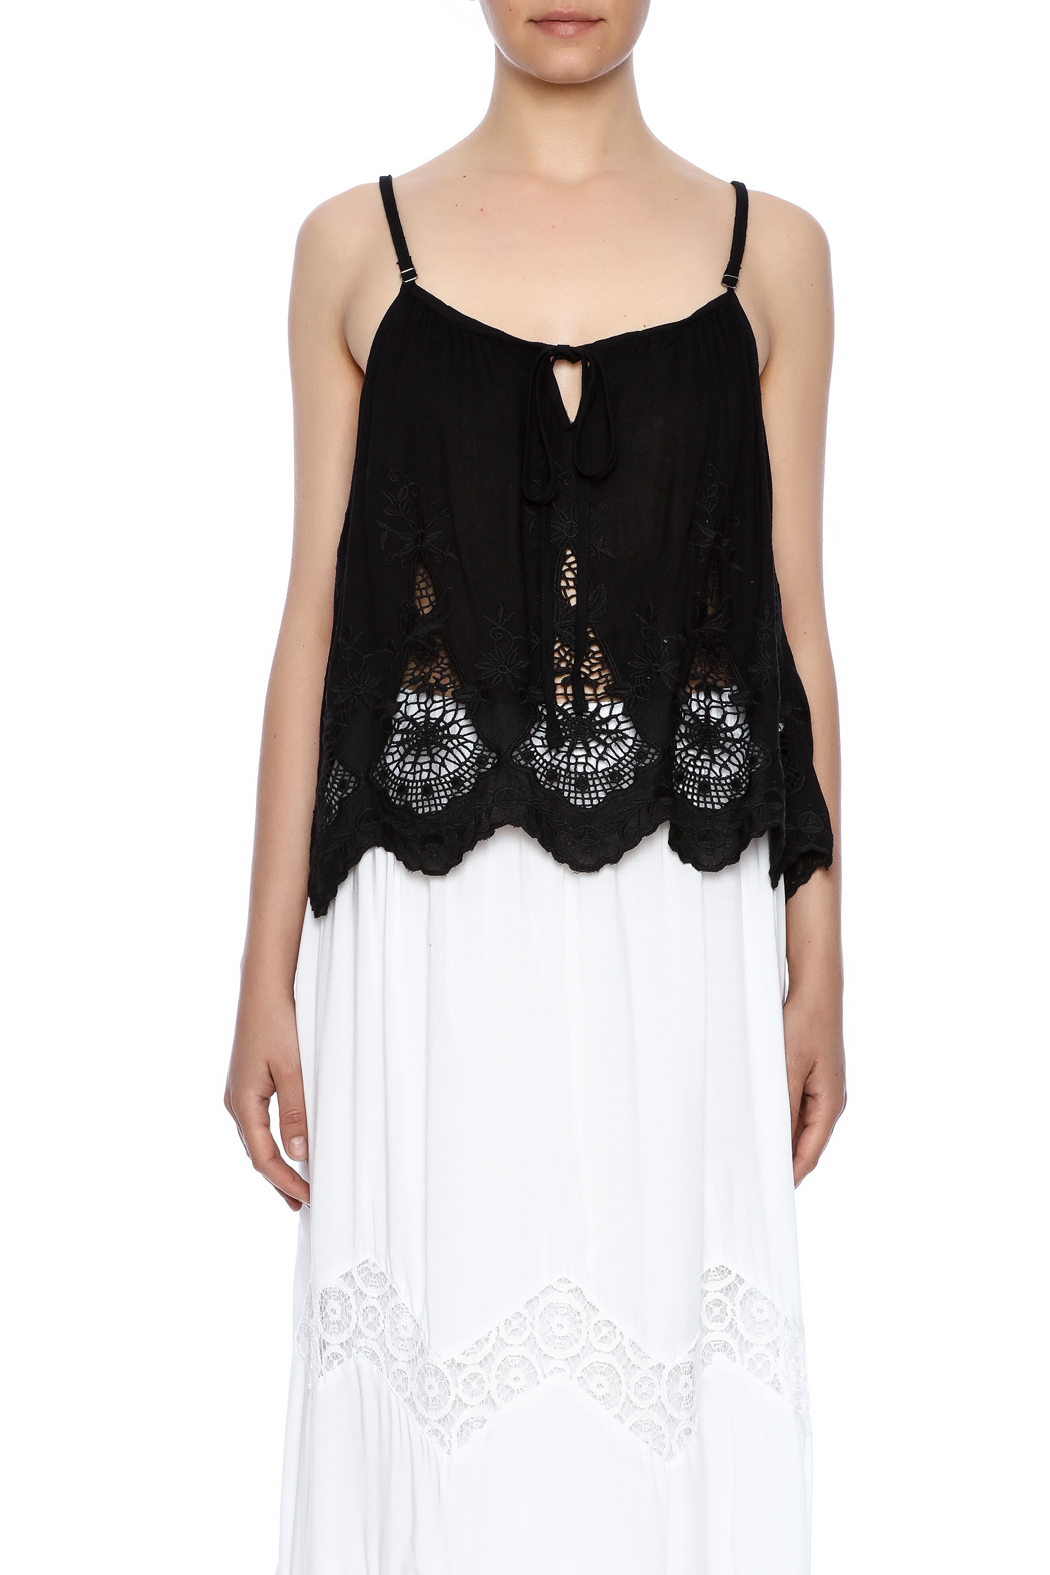 NU New York Catwalk Camisole Blouse - Side Cropped Image